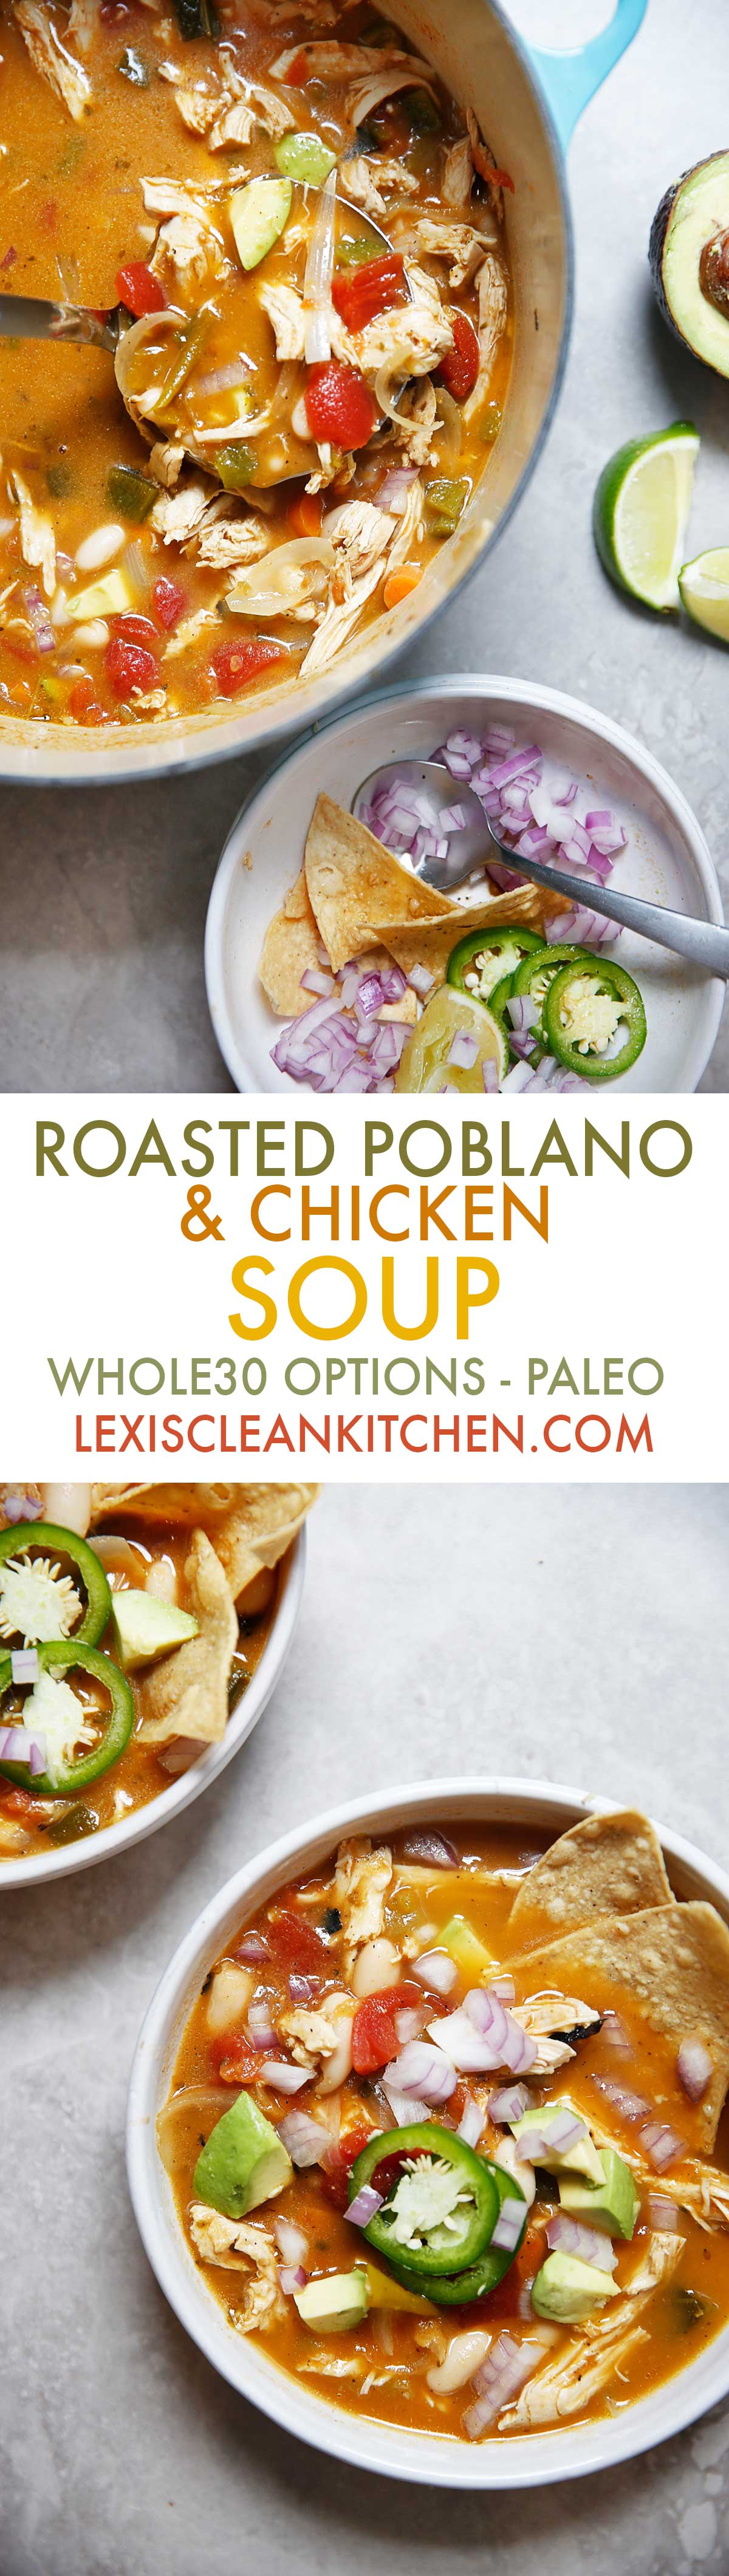 Roasted Poblano and Chicken Soup [Whole30 option, dairy-free, grain-free, paleo-friendly] | Lexi's Clean Kitchen